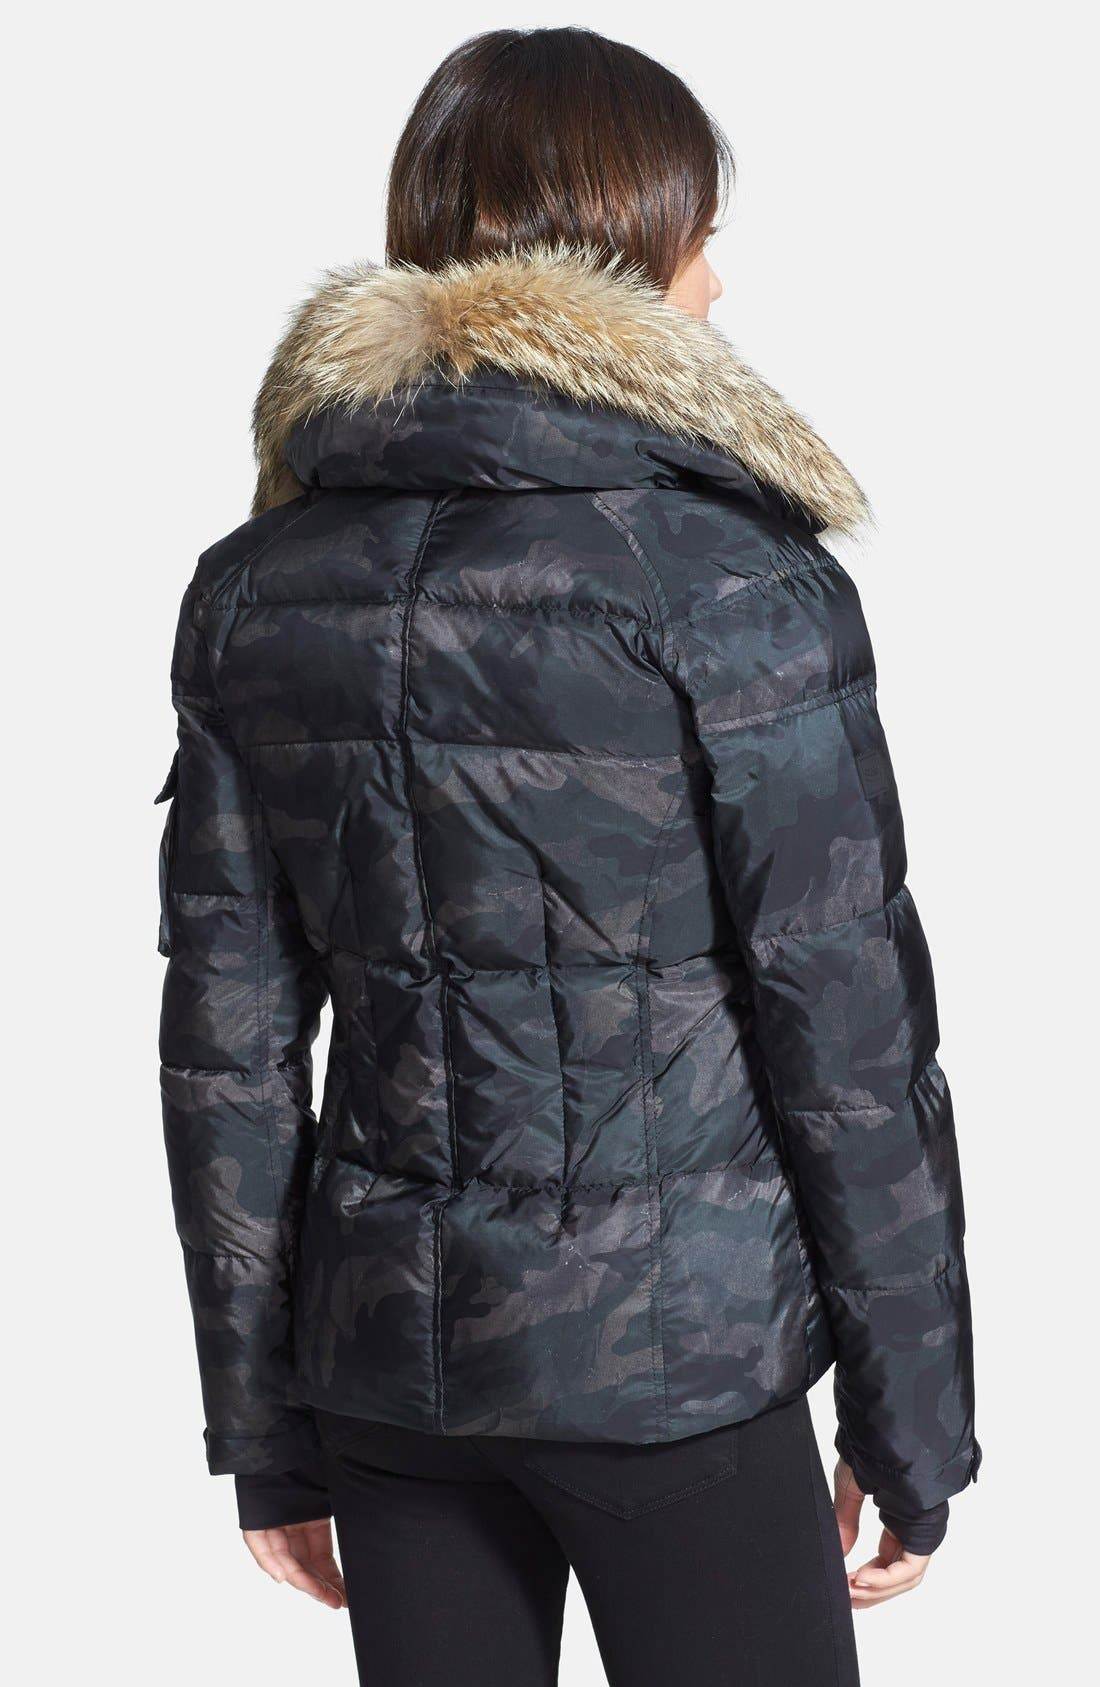 SAM. 'Freestyle' Camo Goose Down Jacket with Genuine Coyote Fur Collar,                             Alternate thumbnail 2, color,                             300